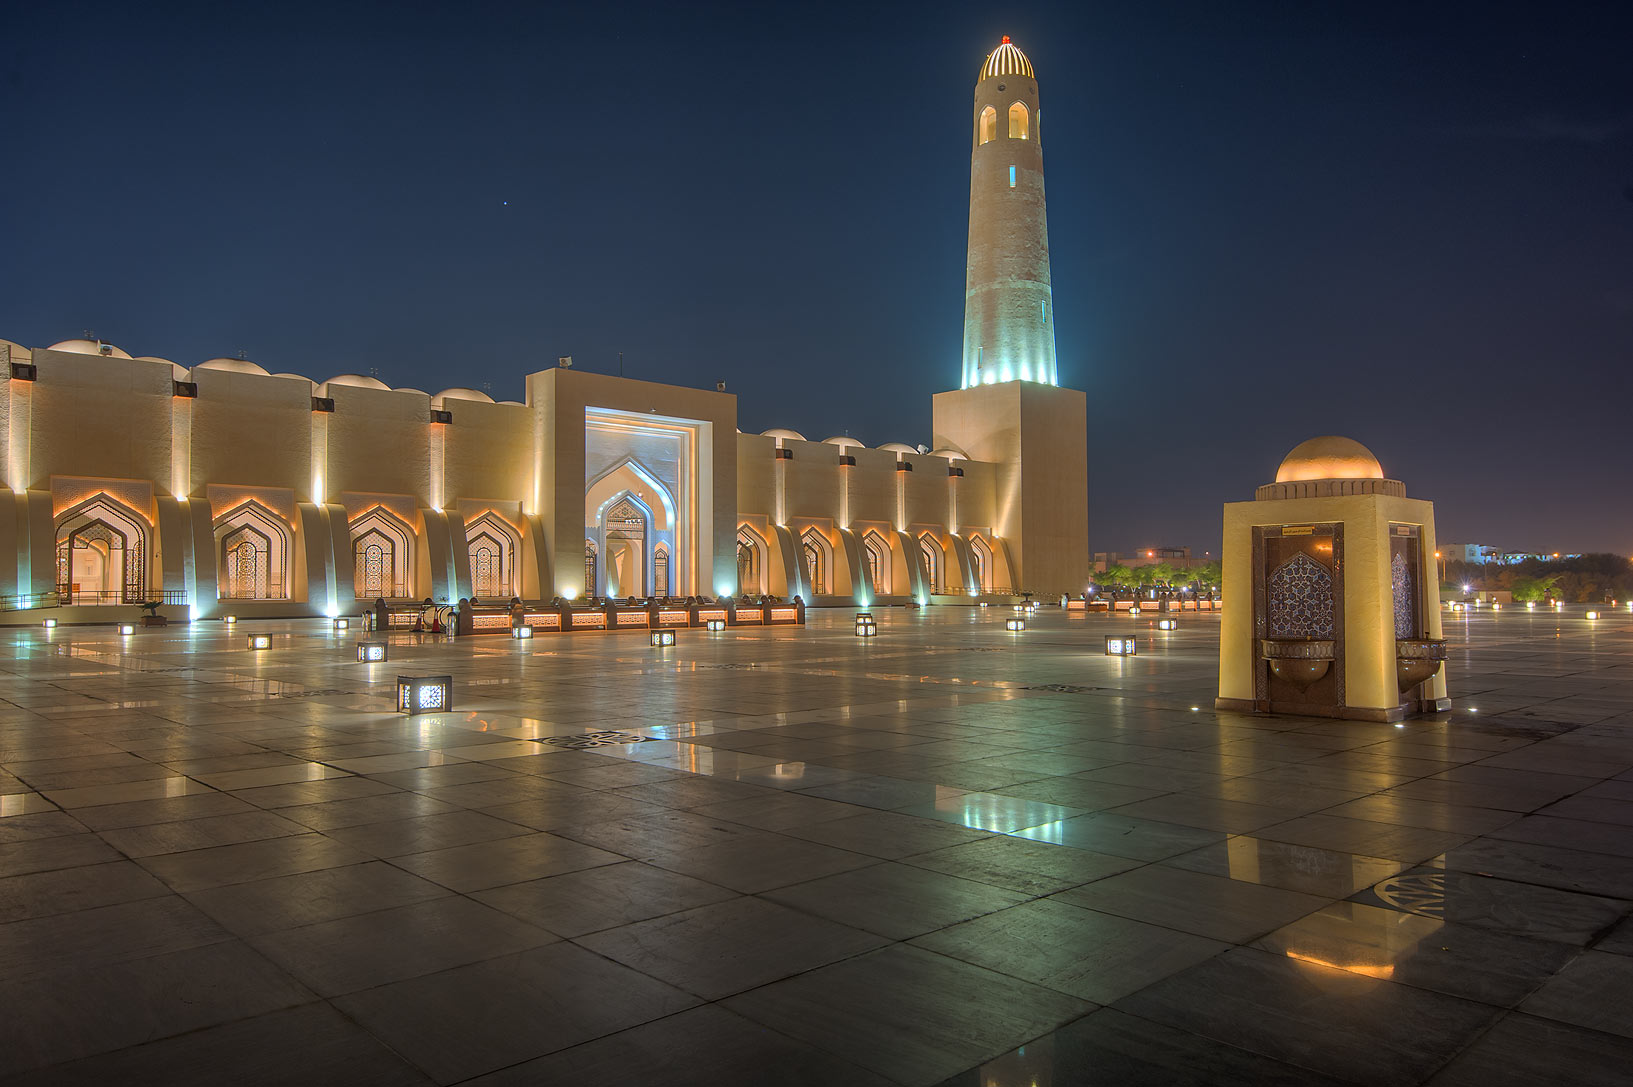 Backyard of State Mosque (Sheikh Muhammad Ibn Abdul Wahhab Mosque). Doha, Qatar